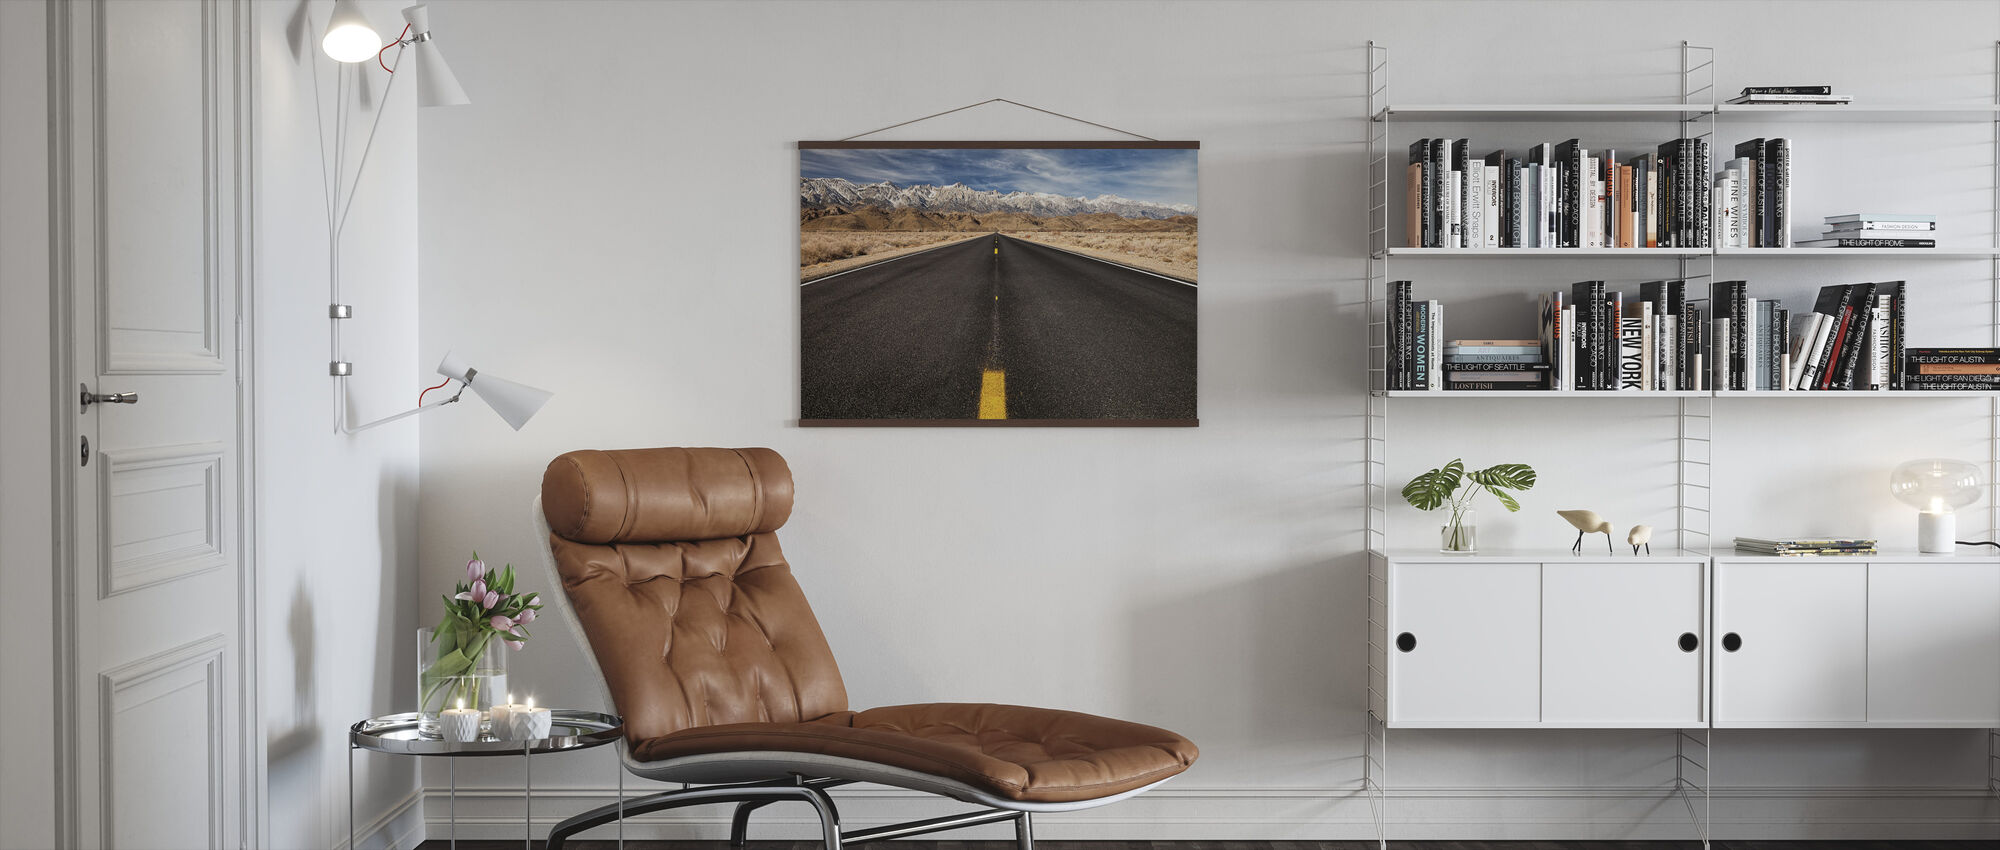 Rocky Mountain Road - Plakat - Stue